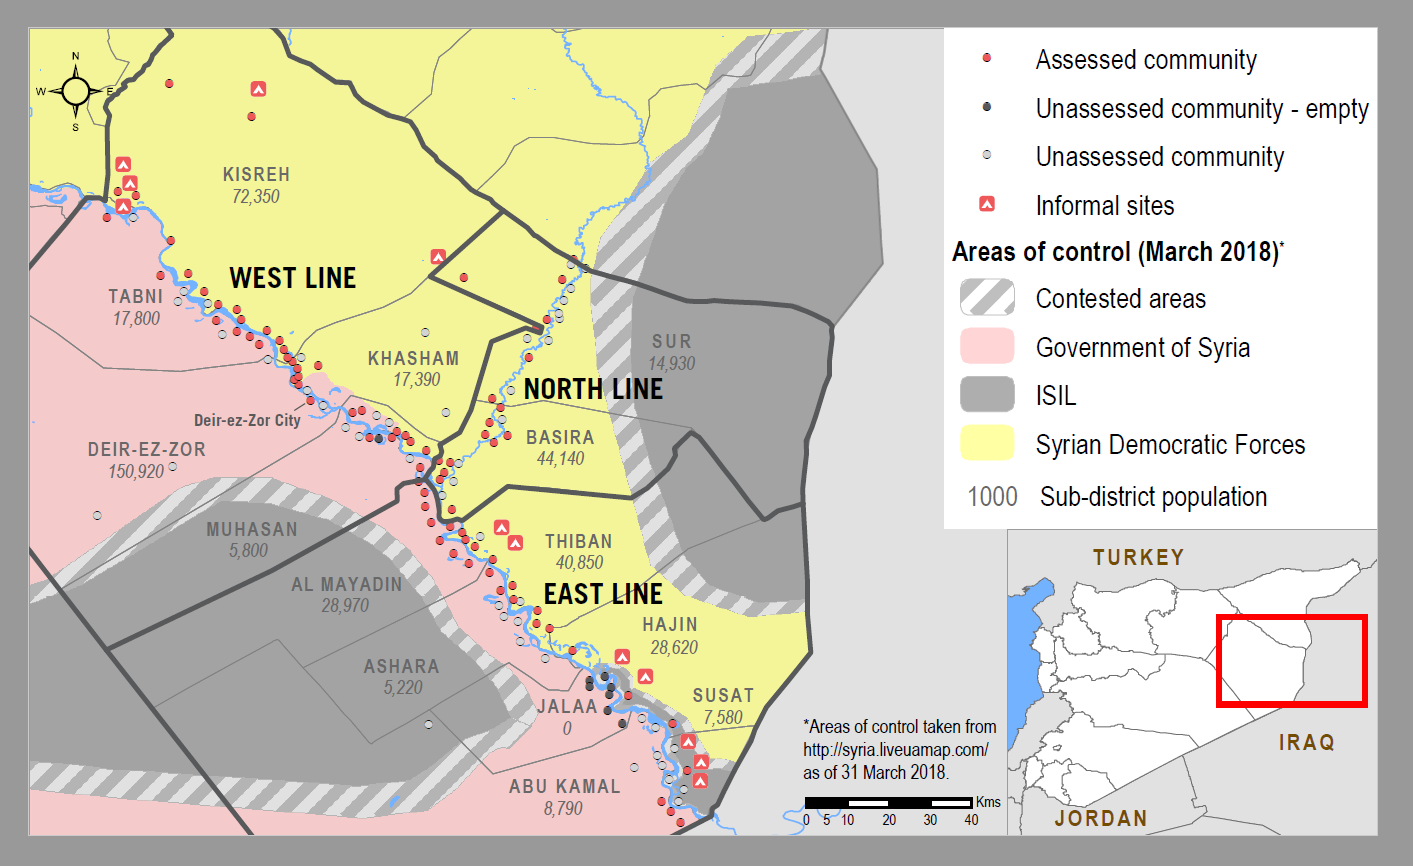 Deir-ez-Zor Assessment Coverage and Areas of Control ©REACH/2018